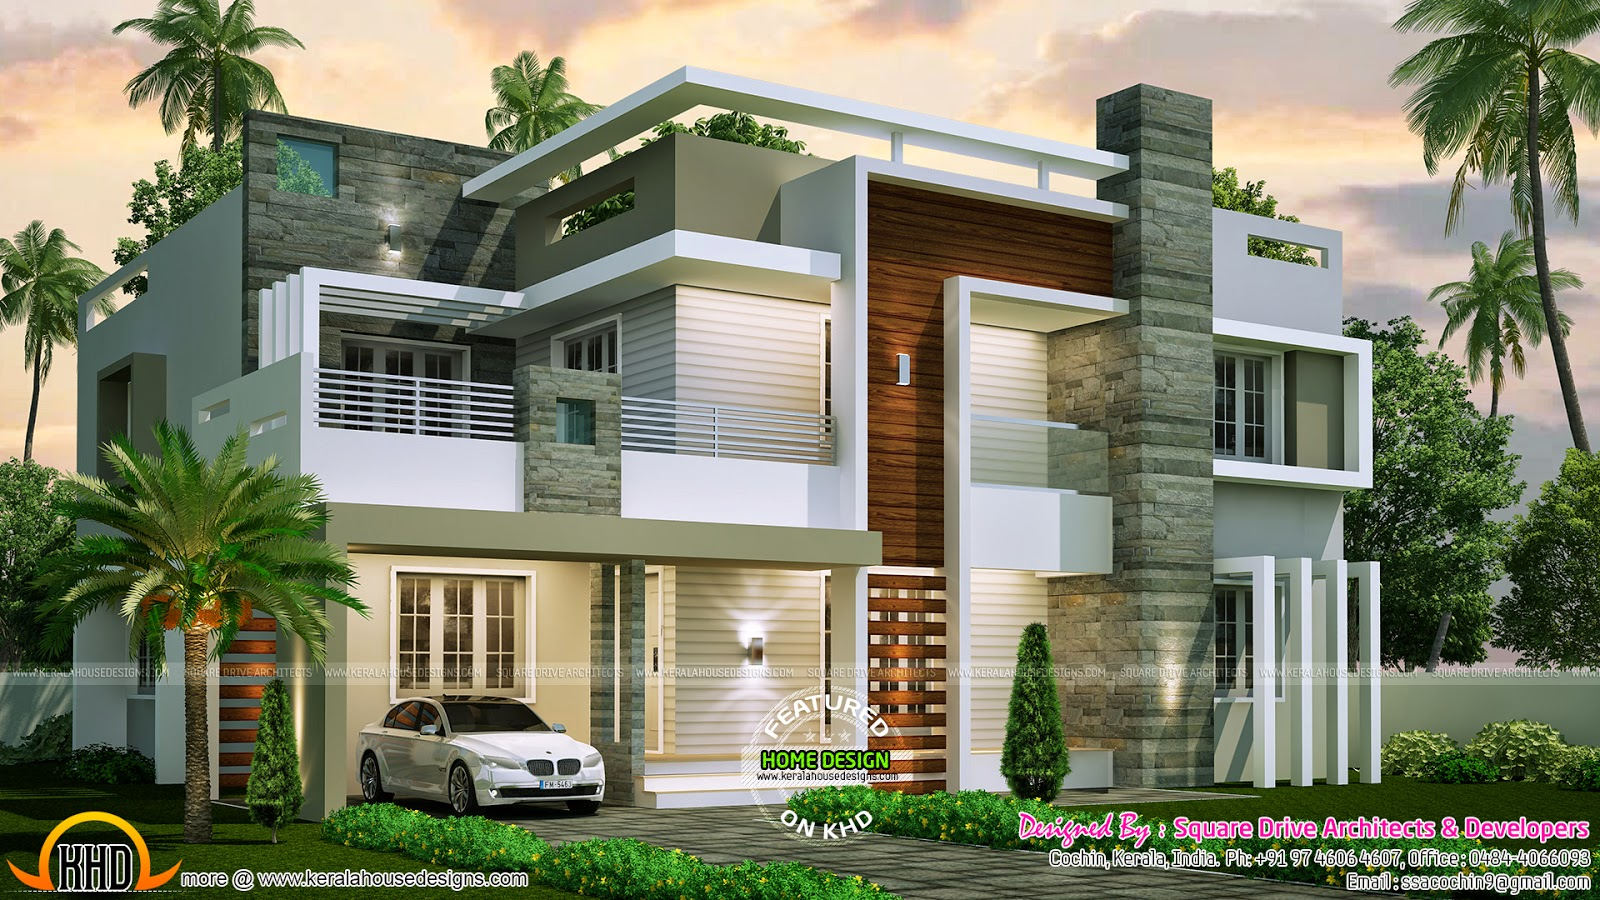 4 bedroom contemporary home design kerala home design and floor plans Design home modern